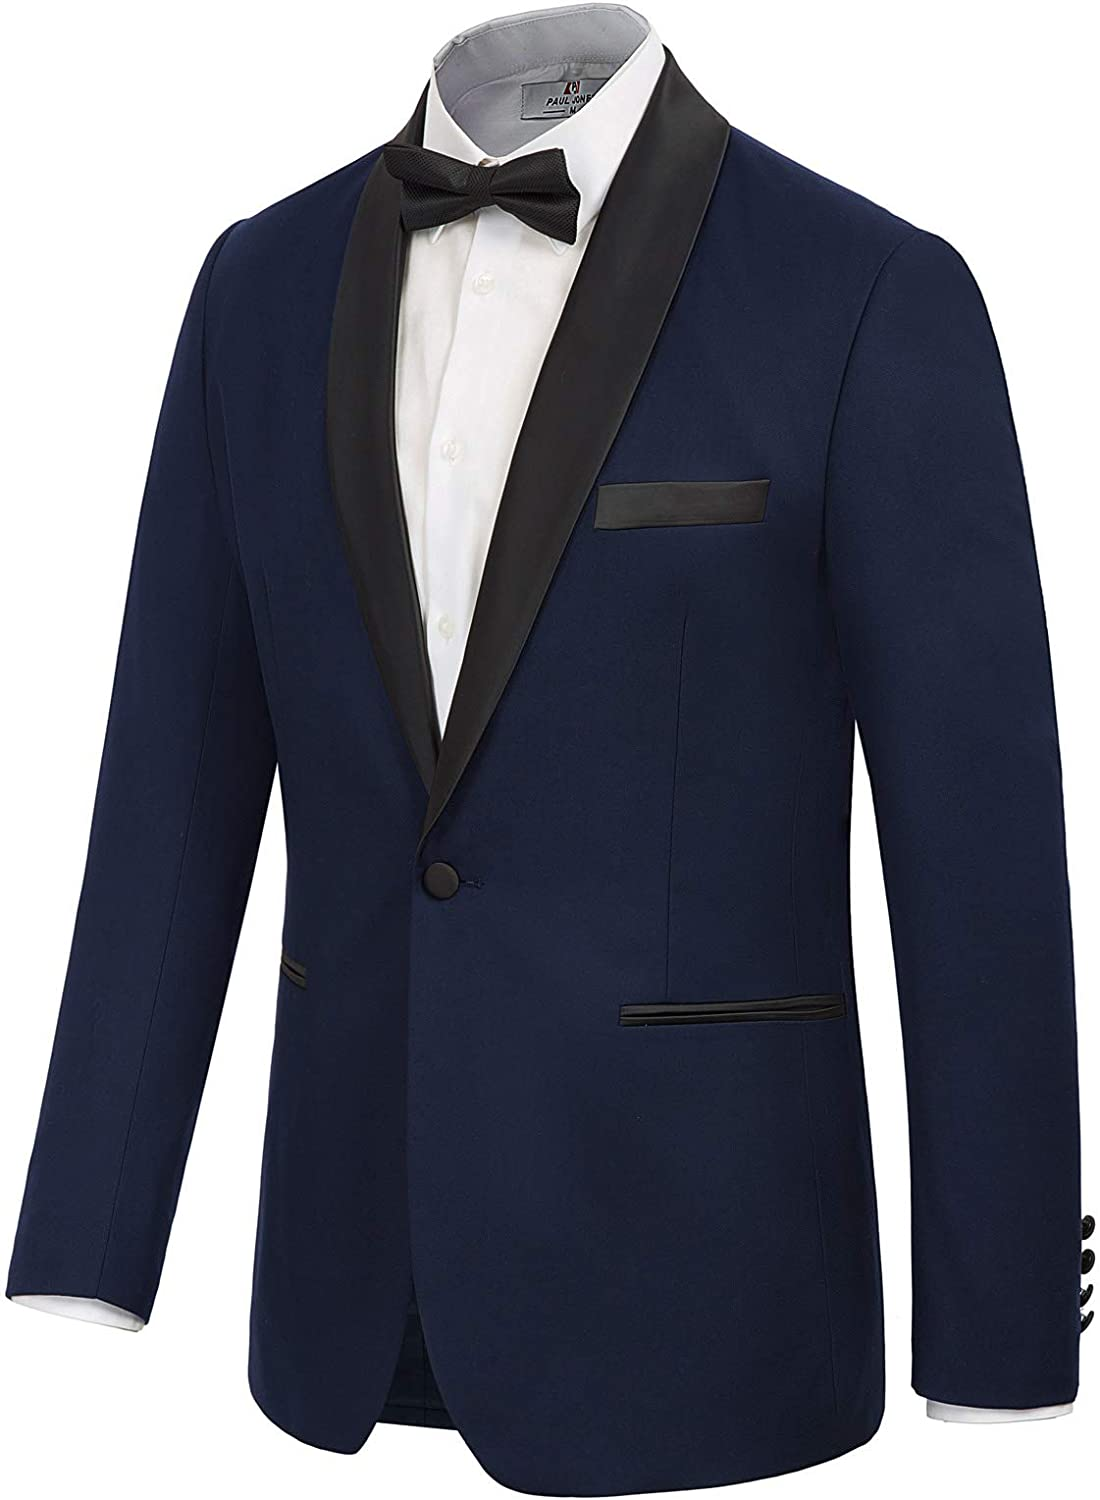 PAUL JONES Men's Prom Tuxedo Jacket Satin Shawl Lapel Slim Fit Blazer Suit